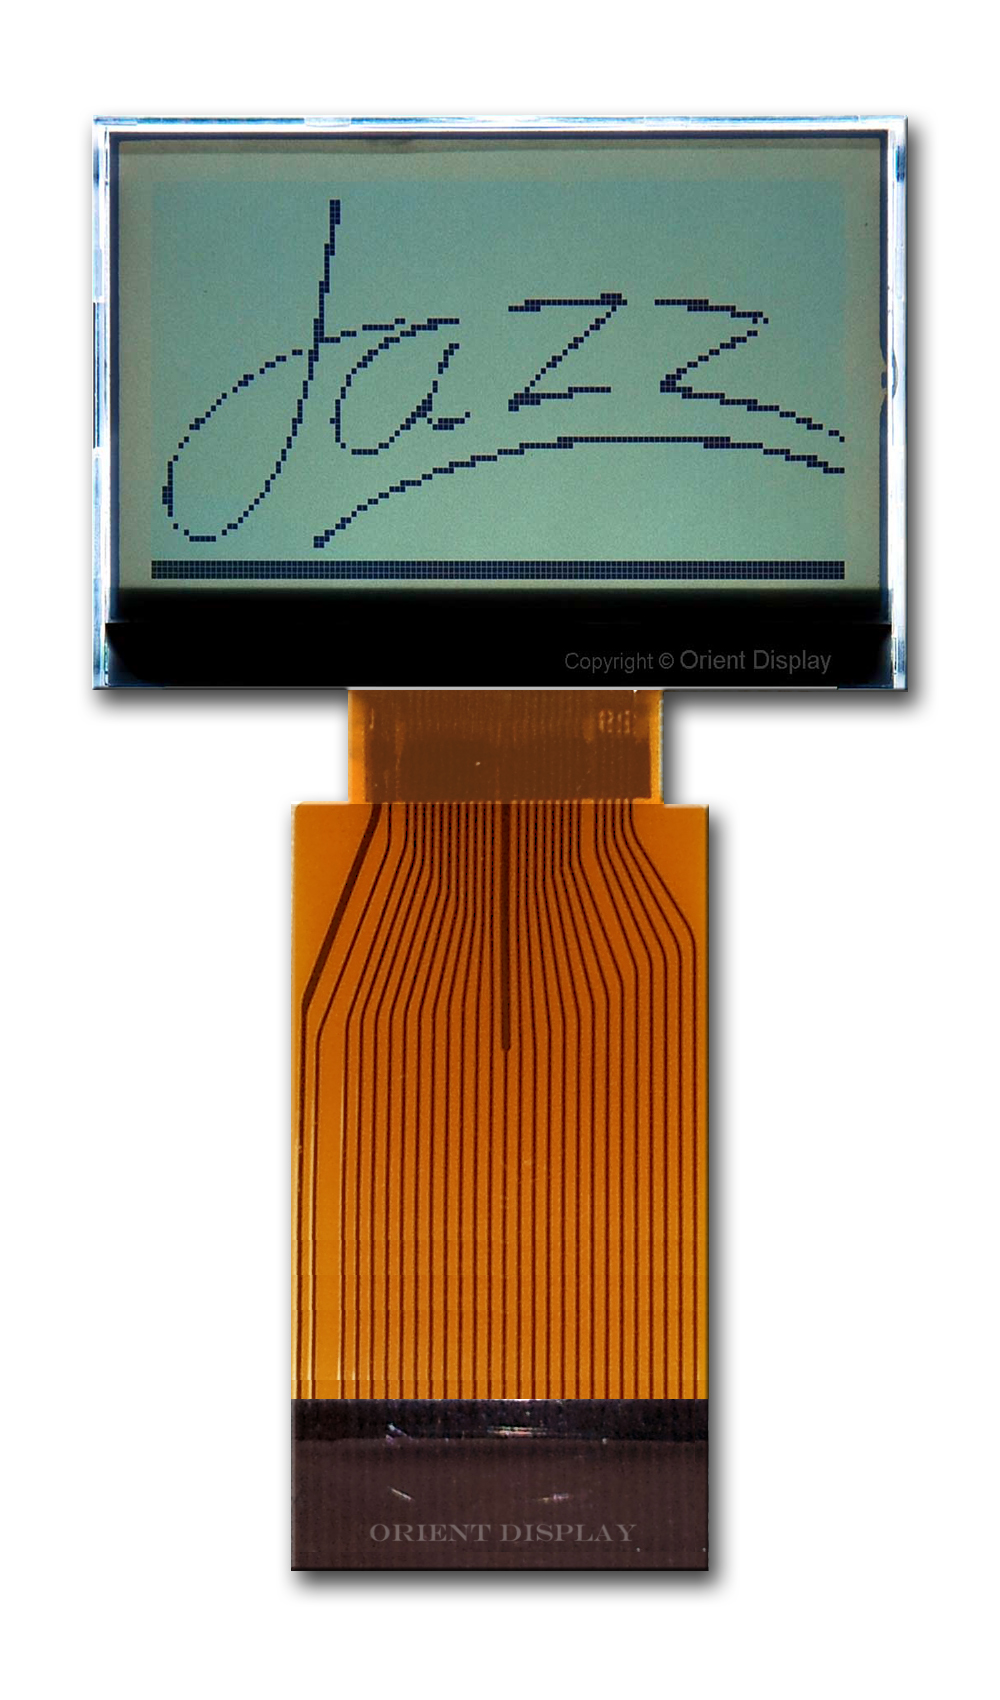 JAZZ-BC-W (Graphic 128x64 COG LCD Module)